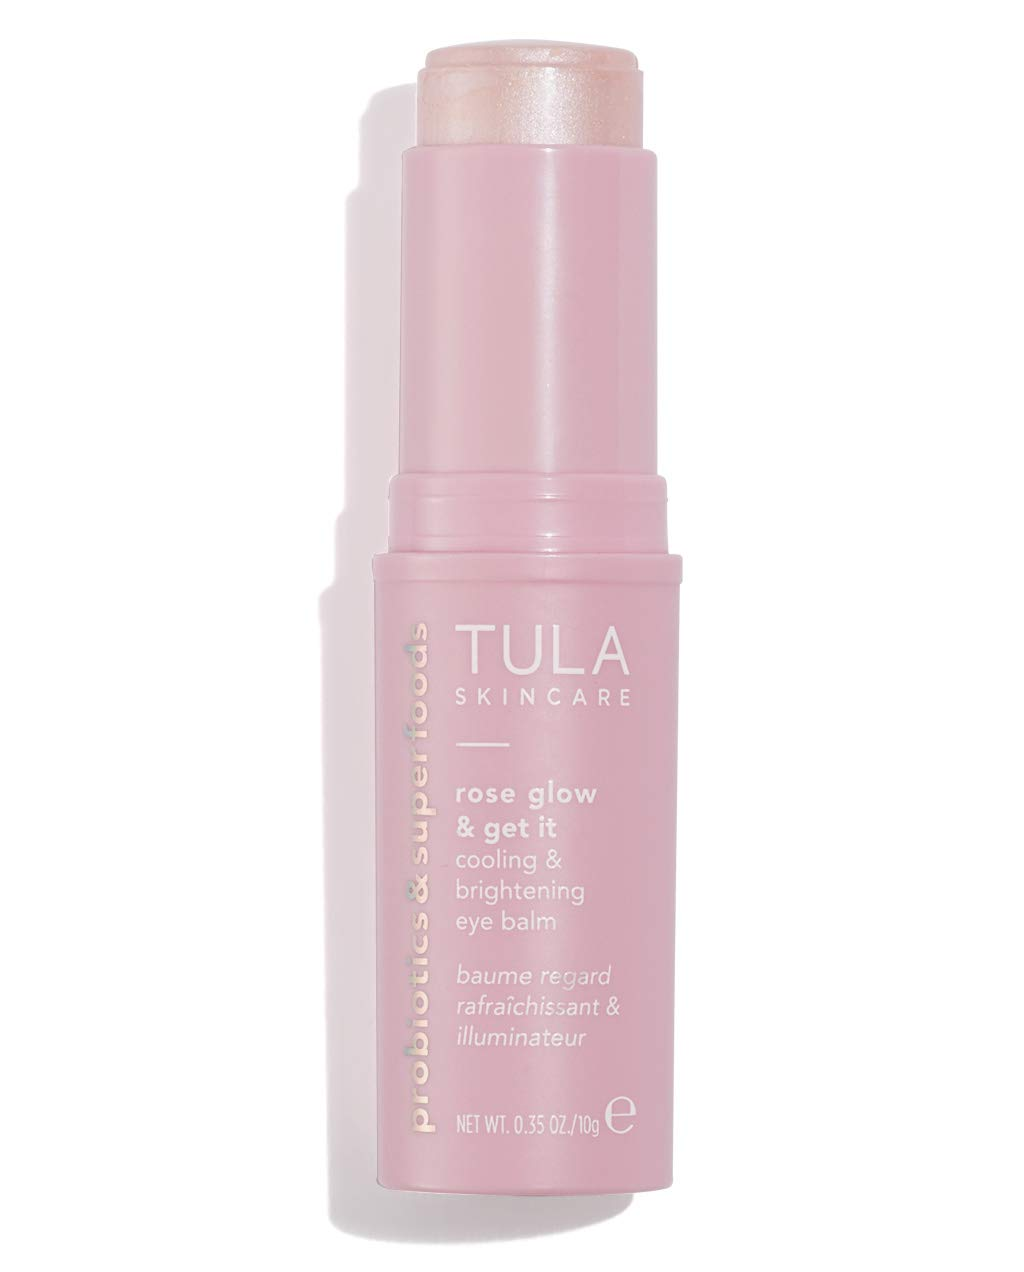 TULA Probiotic Skin Care Rose Glow & Get It Cooling & Brightening Eye Balm | Dark Circle Under Eye Treatment, Instantly Hydrate and Brighten Undereye Area, Perfect to Use On-the-go | 0.35 oz by TULA